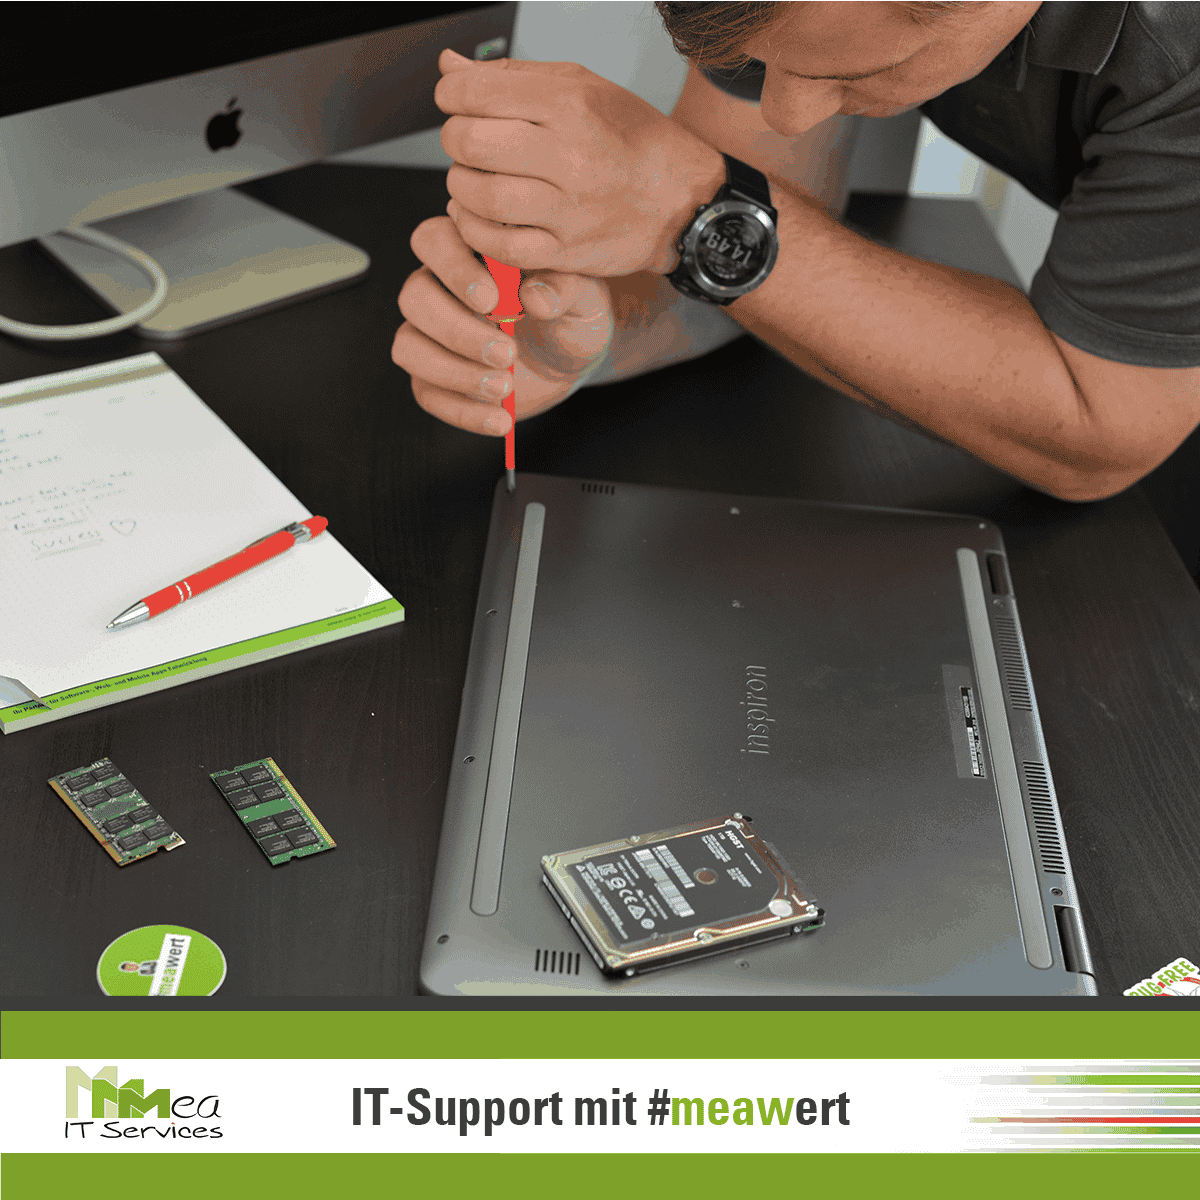 IT-Support mit meawert werner moser